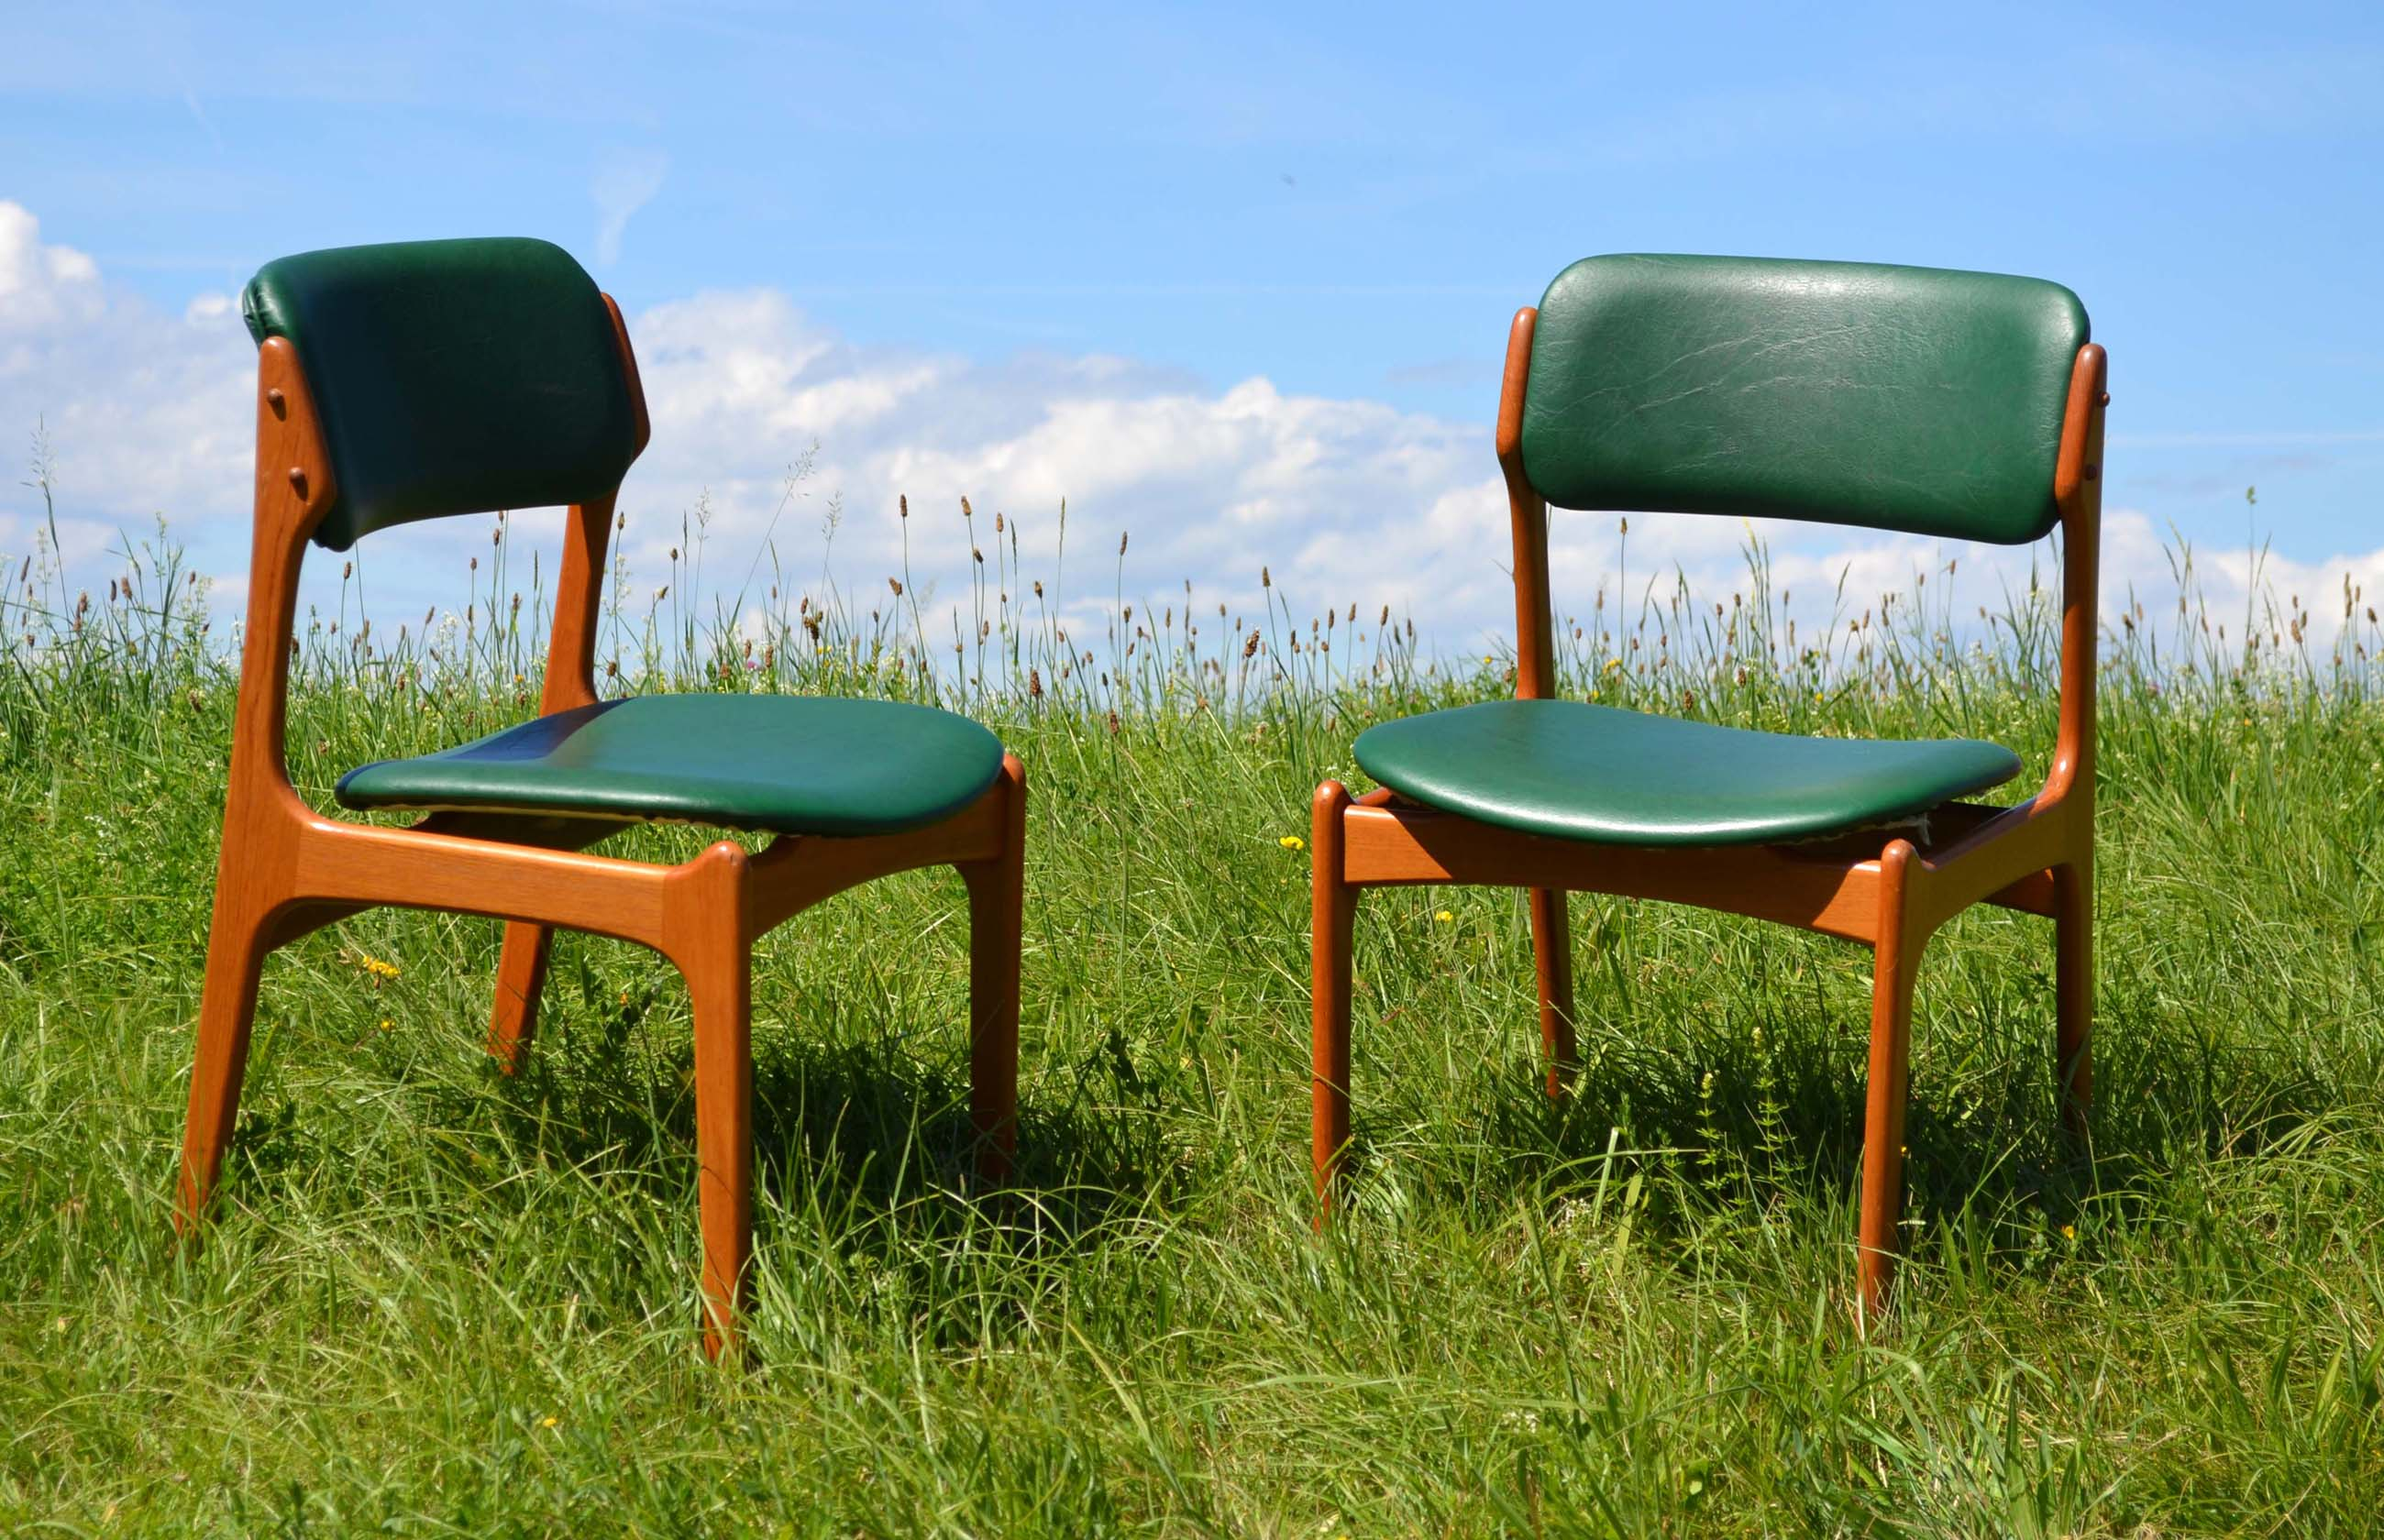 Chaises Scandinaves Vintage Mobilier Design Vintage Scandinave Chaises Et Meubles En